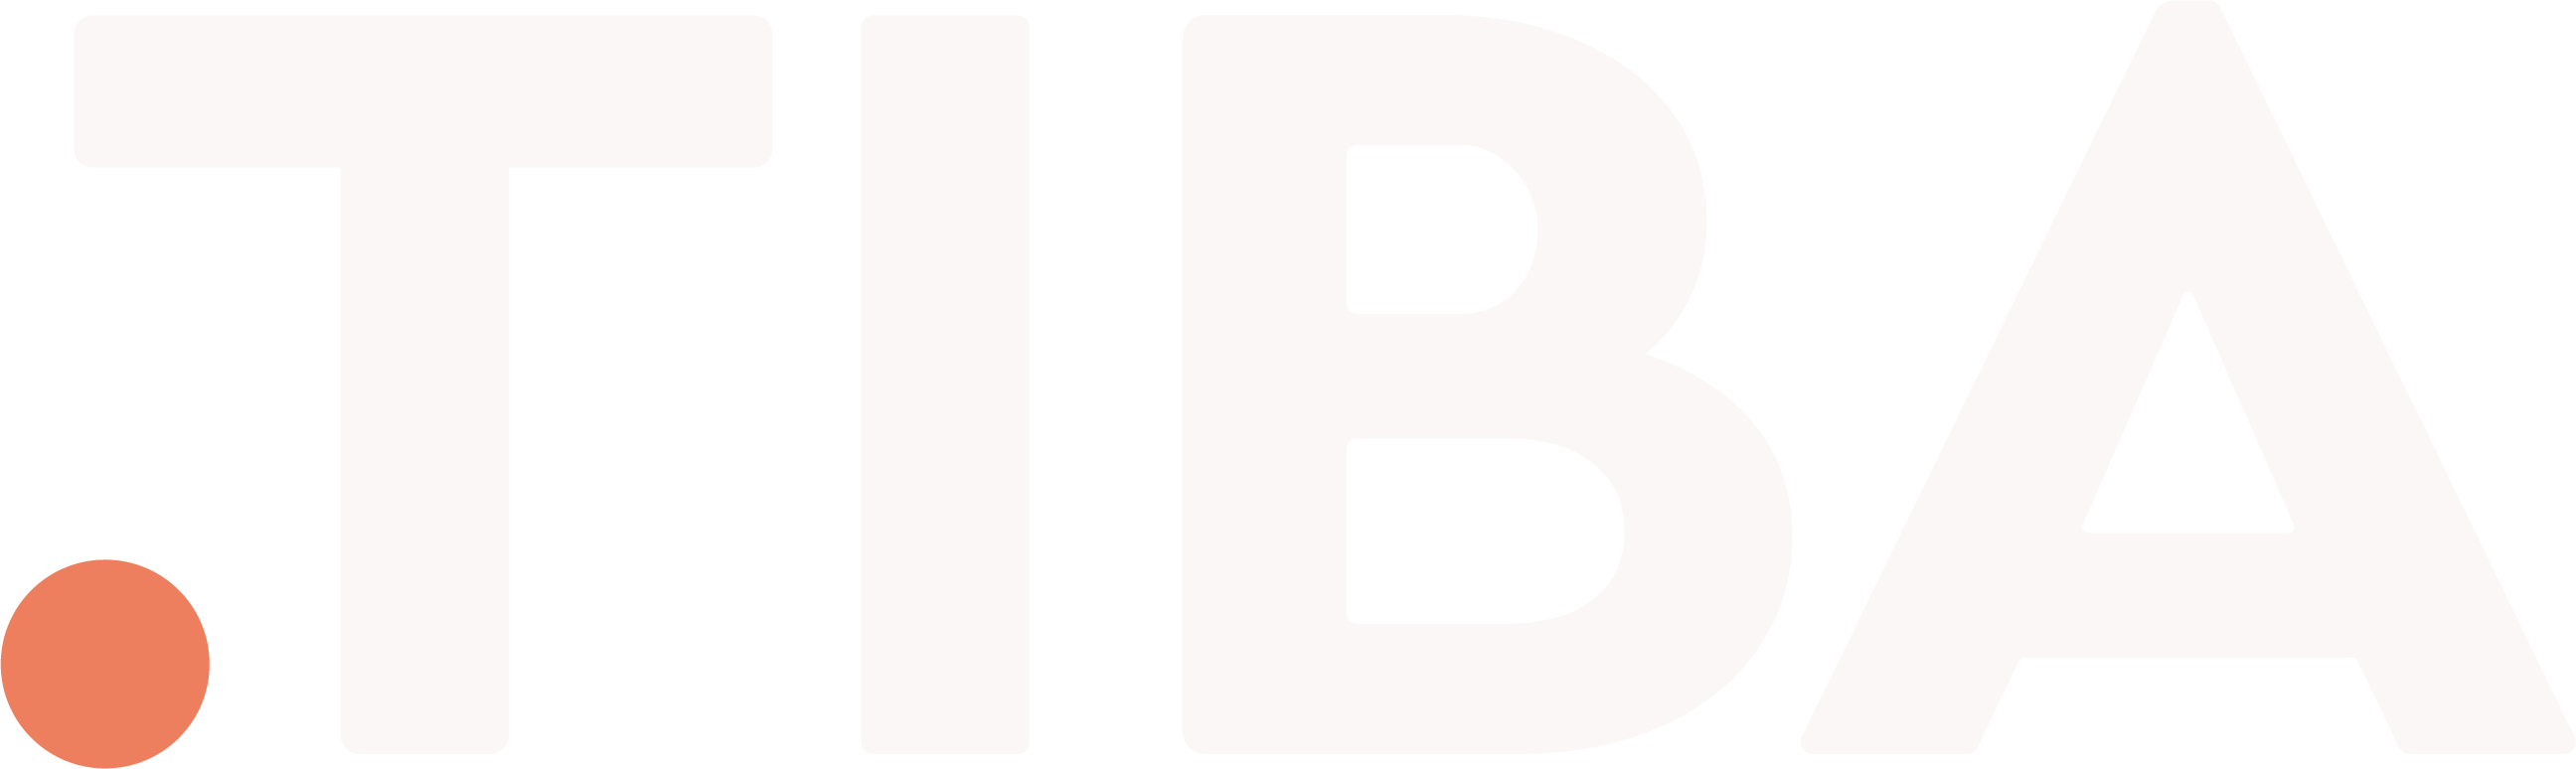 the .TIBA brandmark - A red dot followed by TIBA written in white Cera Pro capital letters